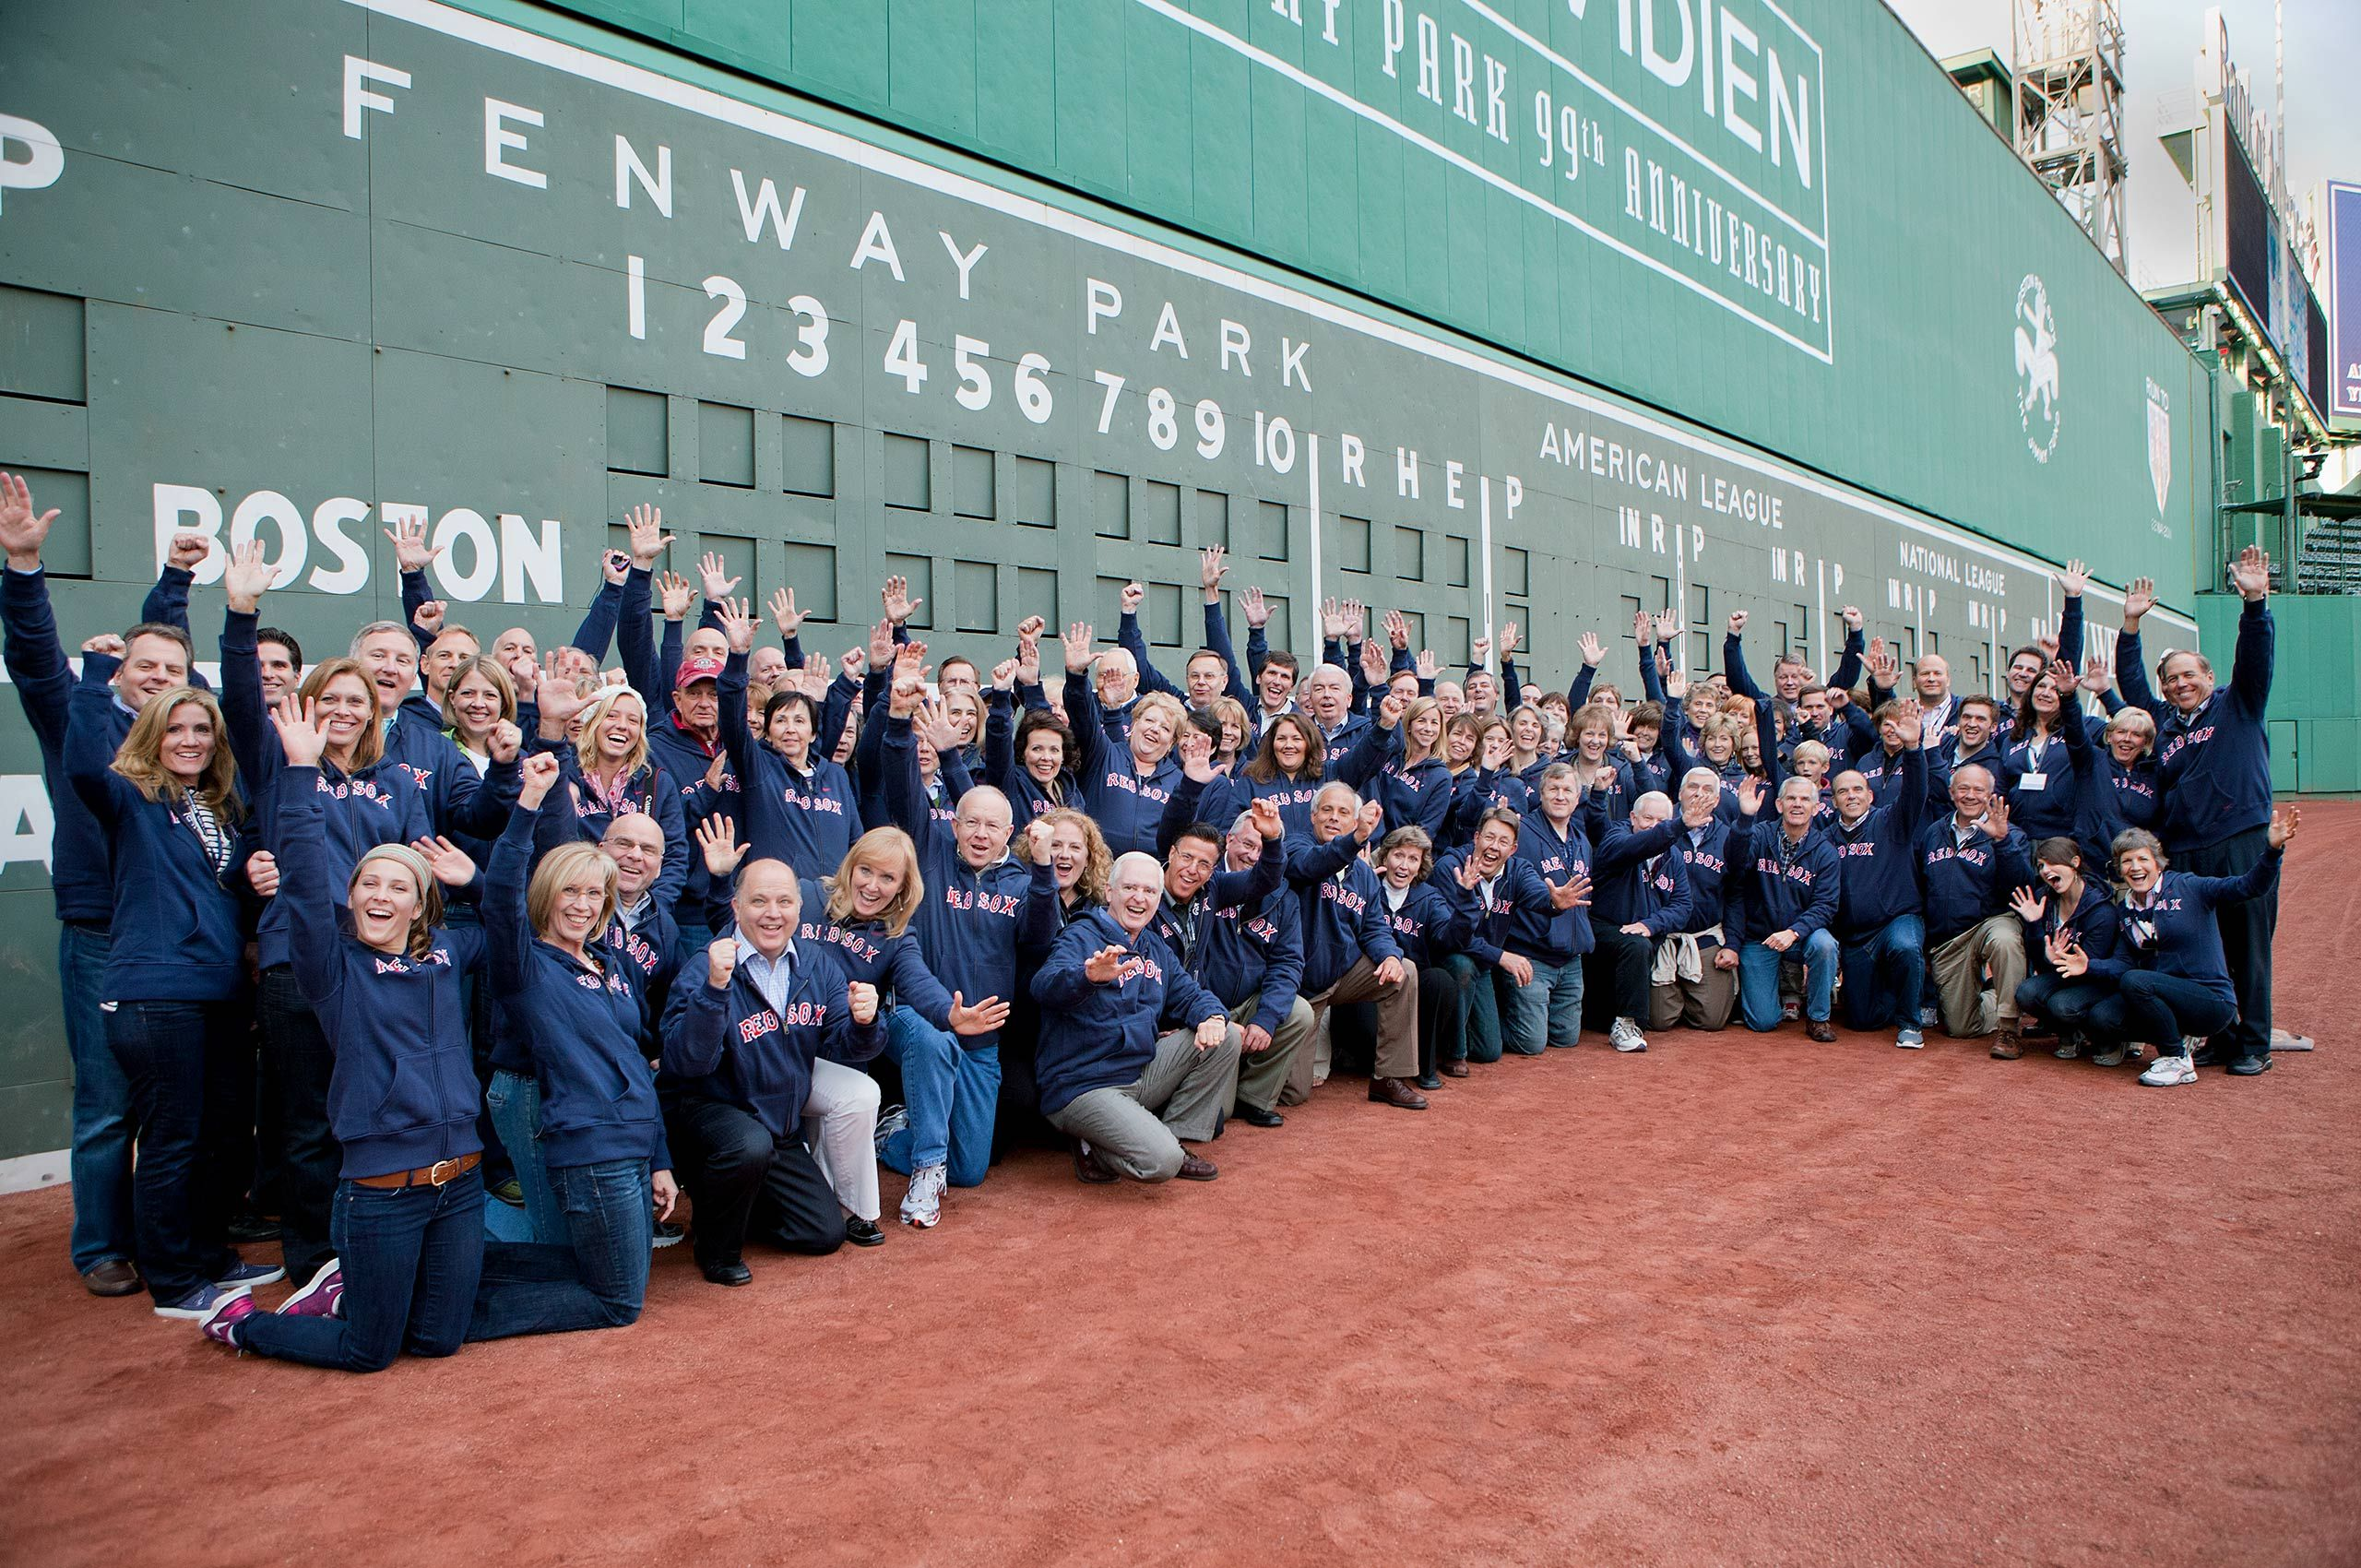 Group Picture in front of the Green Monster Wall at Fenway Park